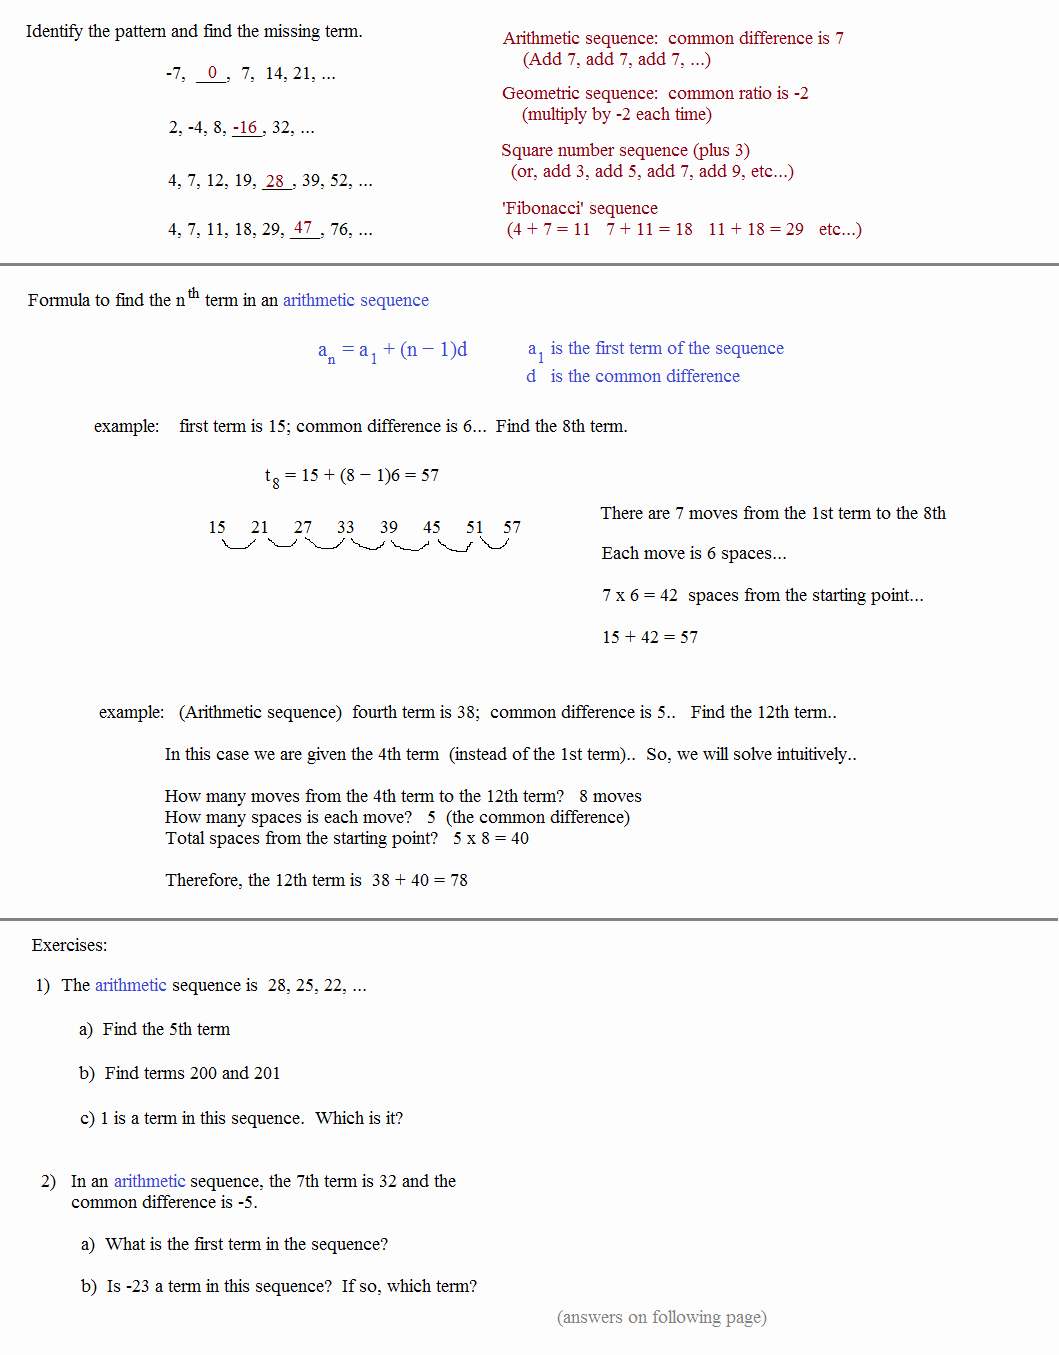 Geometric Sequence Practice Worksheet Elegant Math Plane Sequences and Series I